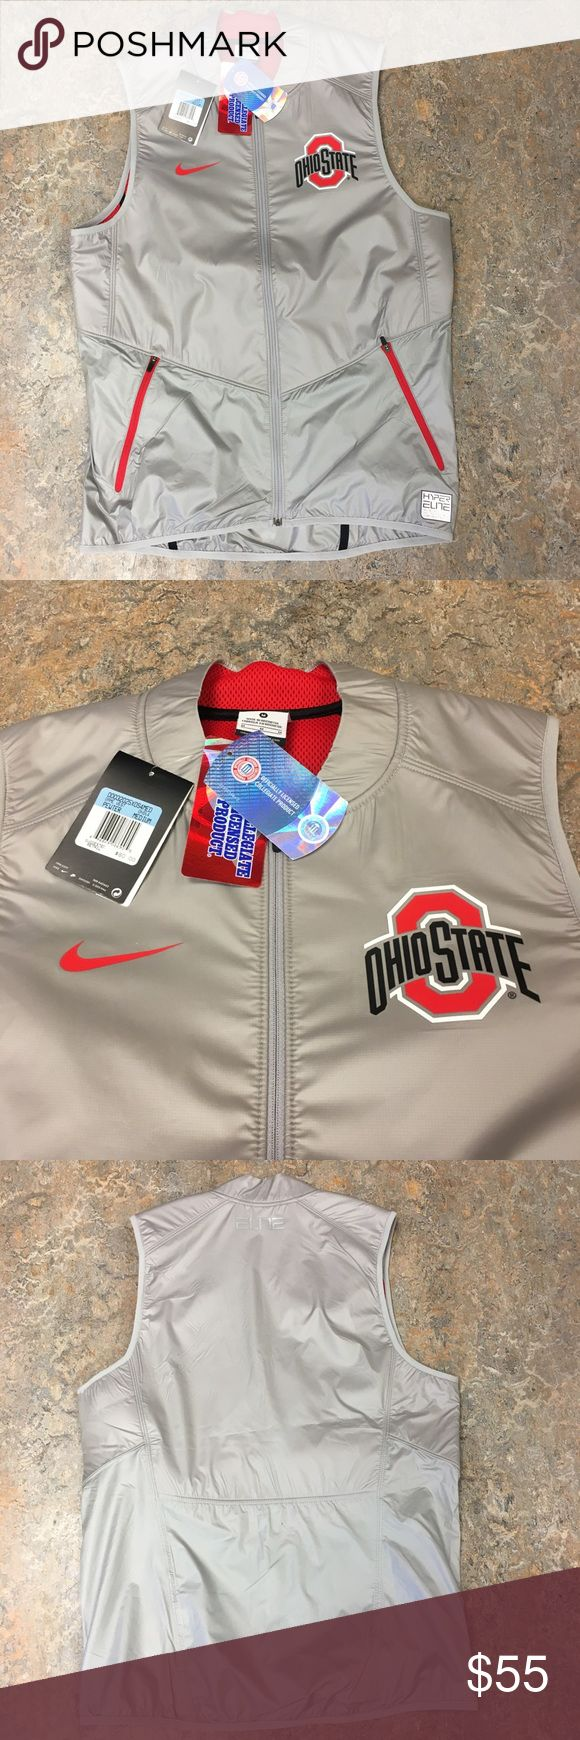 Ohio State Buckeyes Nike Elite Game Vest Jacket Ohio State Buckeyes Nike Elite Full Zip Game Vest. Save money by bundling with other items in my store. Nike Jackets & Coats Vests